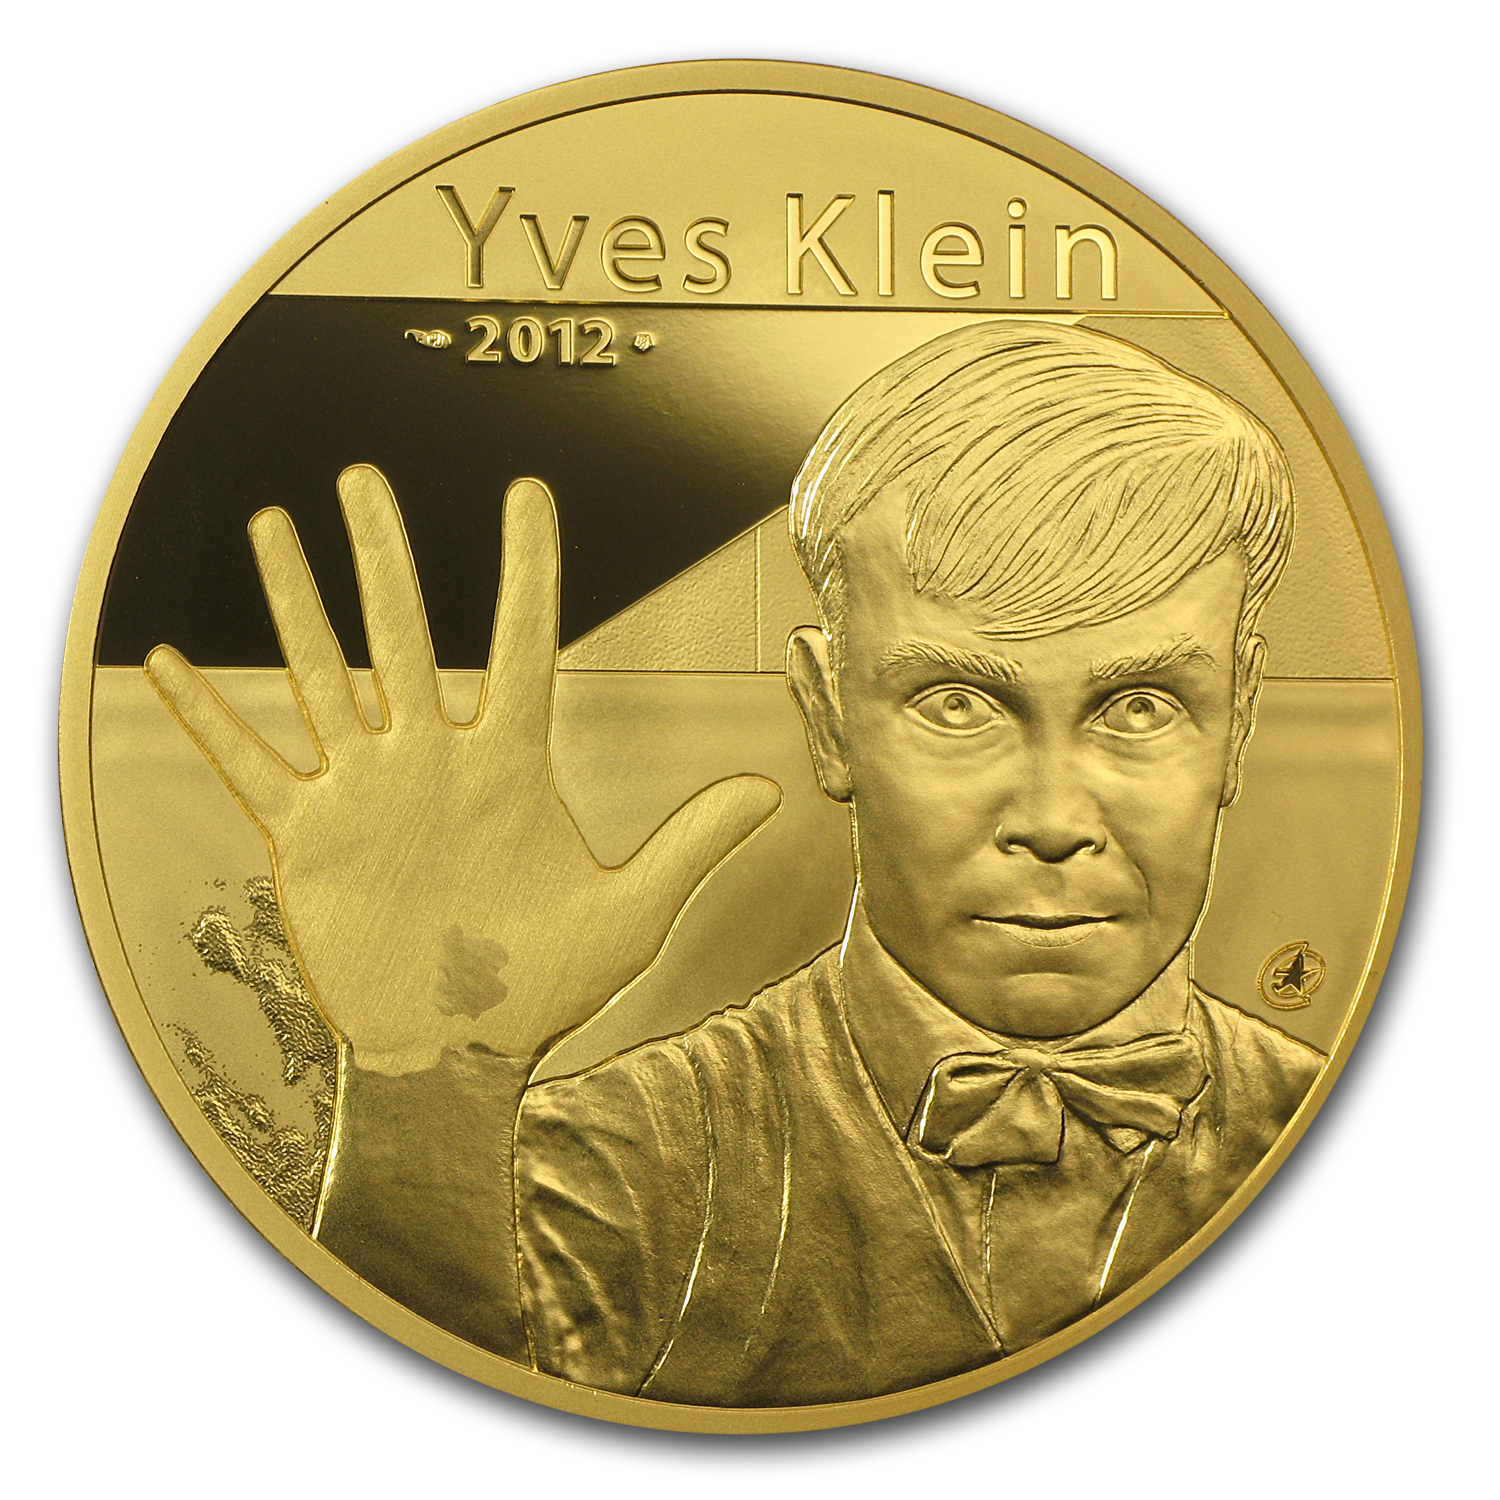 2012 5 oz France Gold Proof European Program - Yves Klein